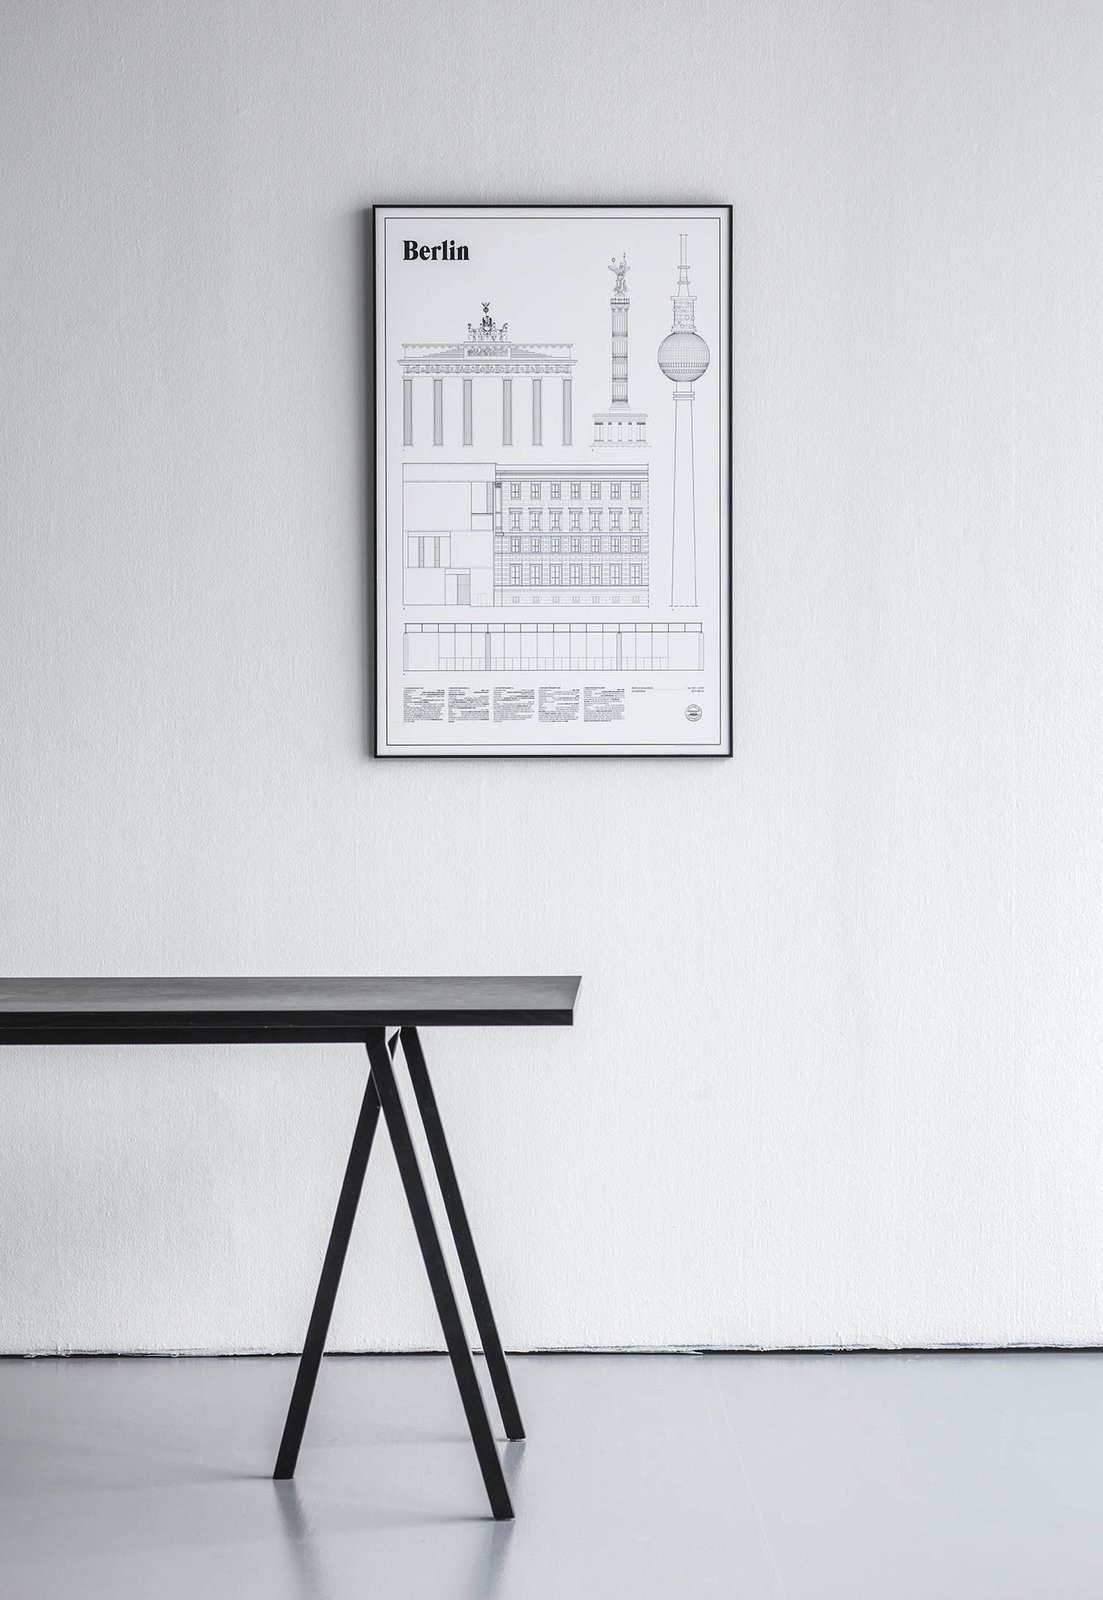 "The Berlin Elevations Architectural Print celebrates building from the German capital, including iconic structures alongside lesser known places, focusing on the often overlooked details that comprise the modern urban experience. This print provides architectural drawings of five of Berlin's buildings— Brandenburger Tor, Berliner Siegesäule, Am Kupfergraben 10, Berliner Fernsehturm, and Neue Nationalgalerie.  Search ""stockholm elevations architectural print maple frame"" from These Limited-Editon Prints Capture Architectural Landmarks Around the World"